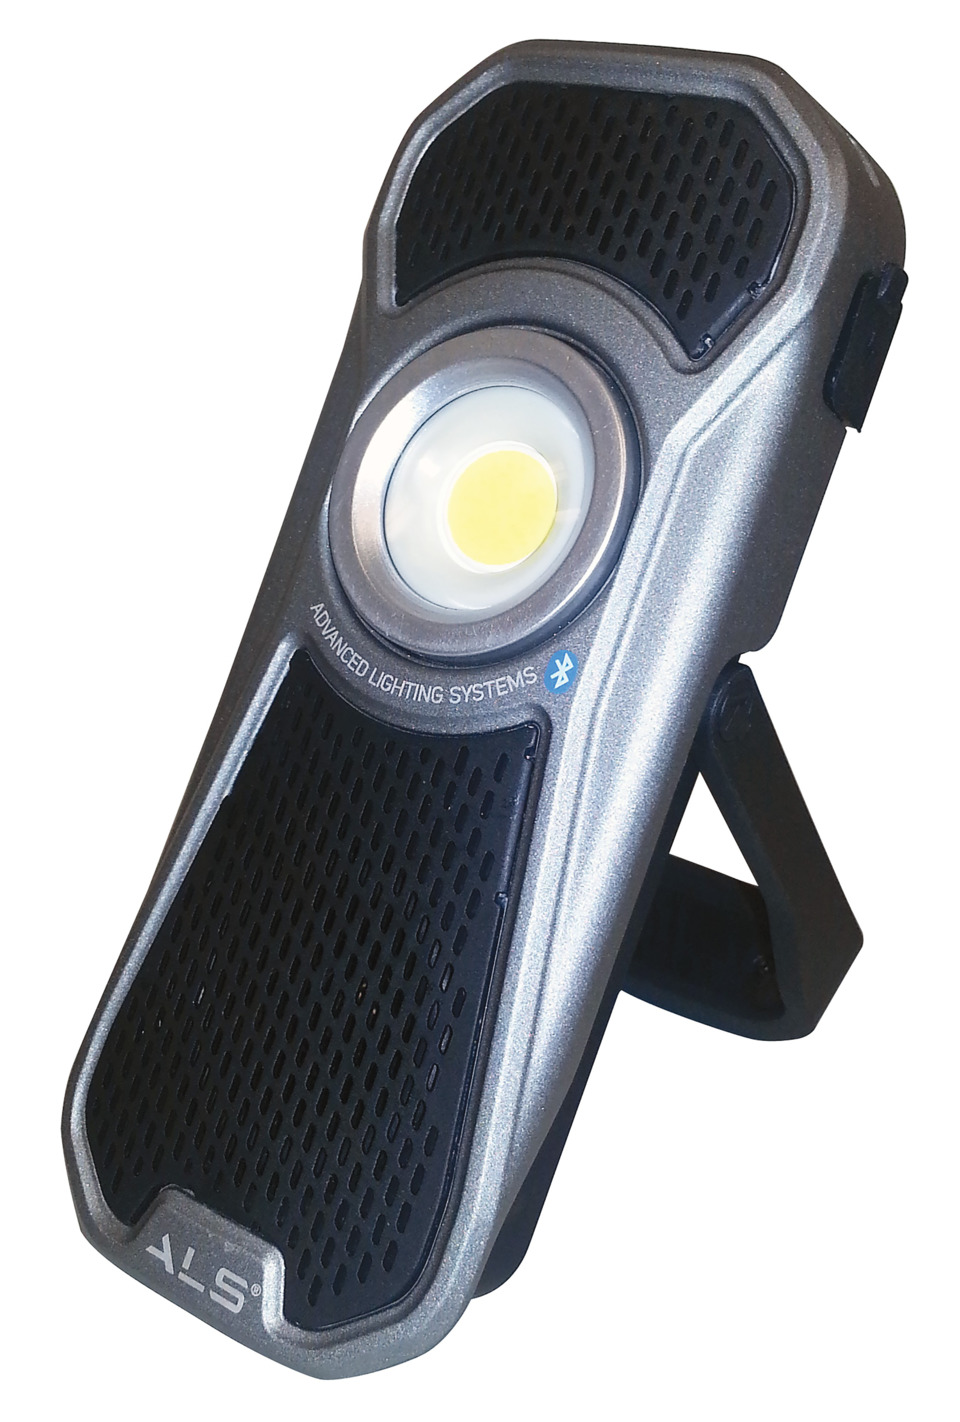 Advanced Lighting Systems 600lm Rechargeable Handheld Led Audio Bicycle Lightings The Light No Aud601r Has A Built In Bluetooth Speaker That Provides Superior Sound